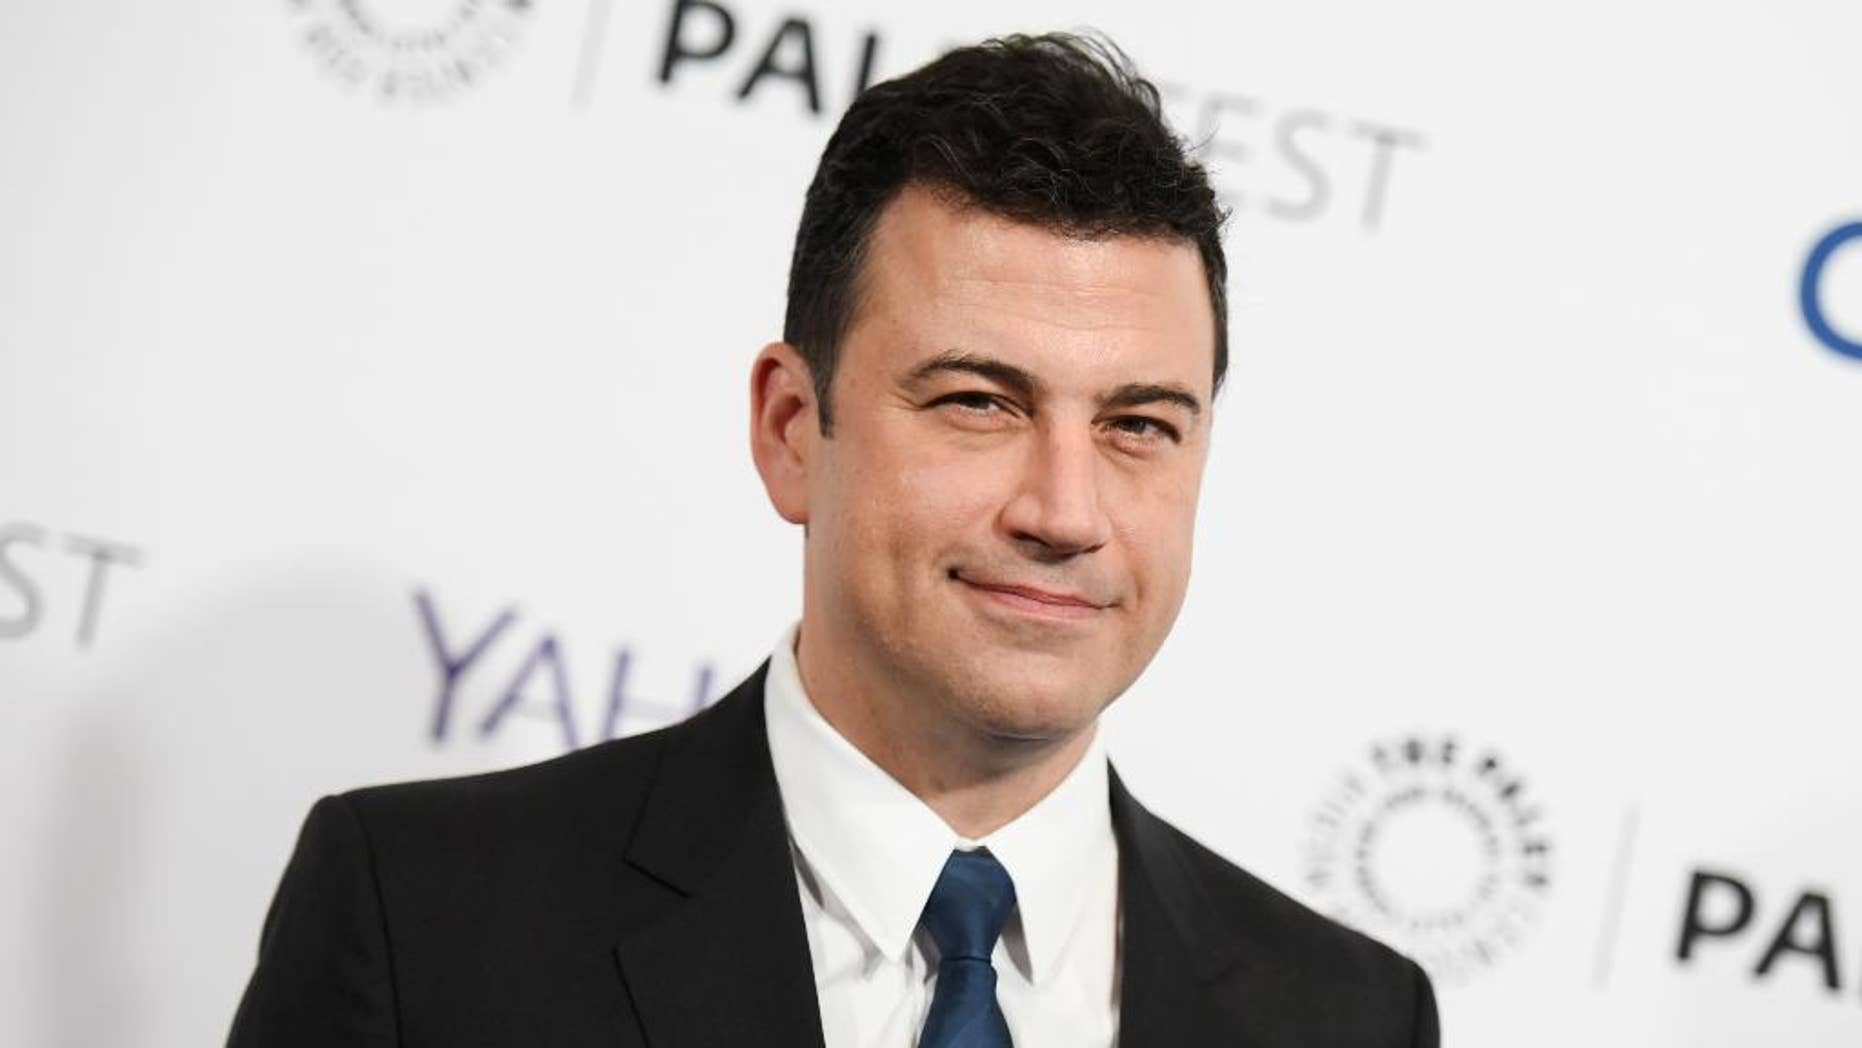 """FILE - In this March 8, 2015, file photo, Jimmy Kimmel arrives at the 32nd Annual Paleyfest : """"Scandal"""" held at The Dolby Theatre in Los Angeles. Kimmel's contract with ABC has been extended through 2019. (Photo by Richard Shotwell/Invision/AP, File)"""